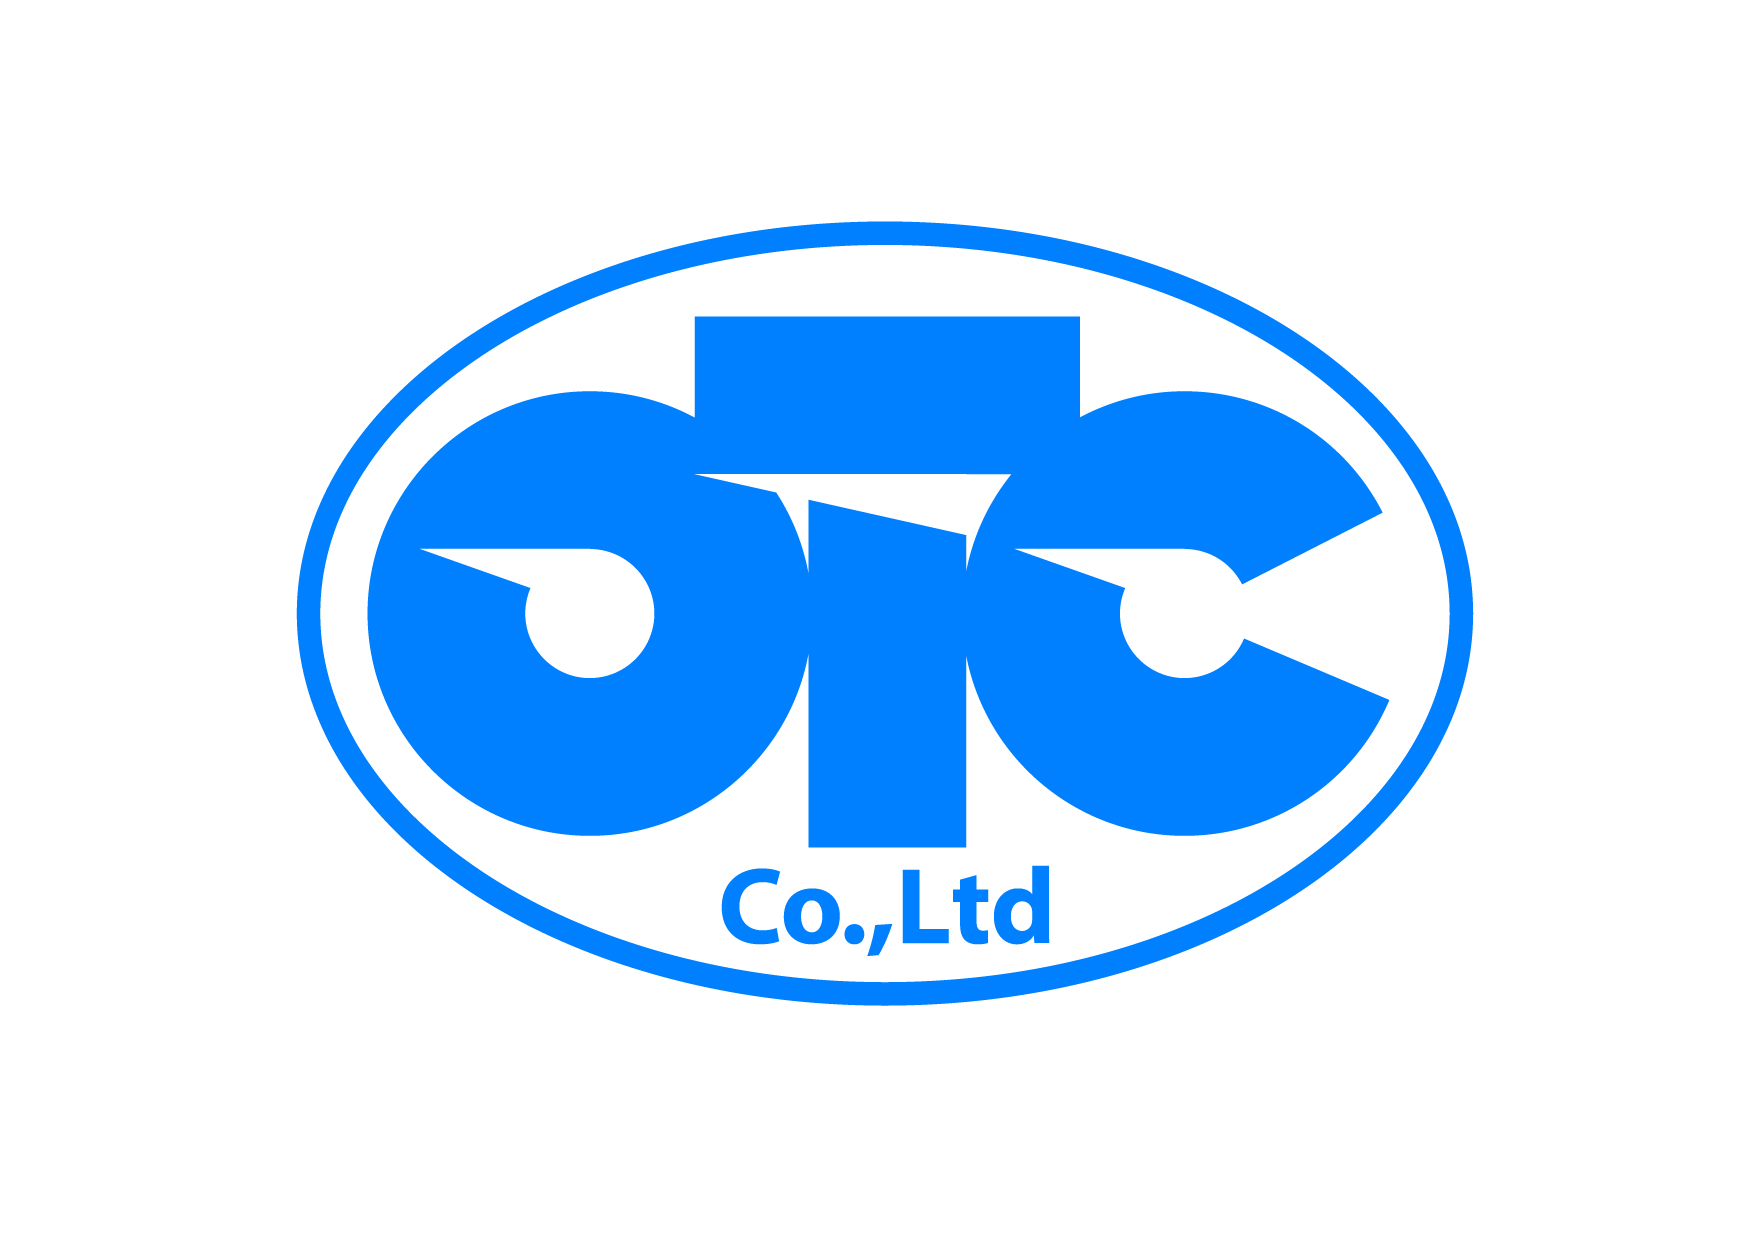 Logo Design by Wilfredo Mendoza - Entry No. 128 in the Logo Design Contest Unique Logo Design Wanted for OTC Co.,Ltd..